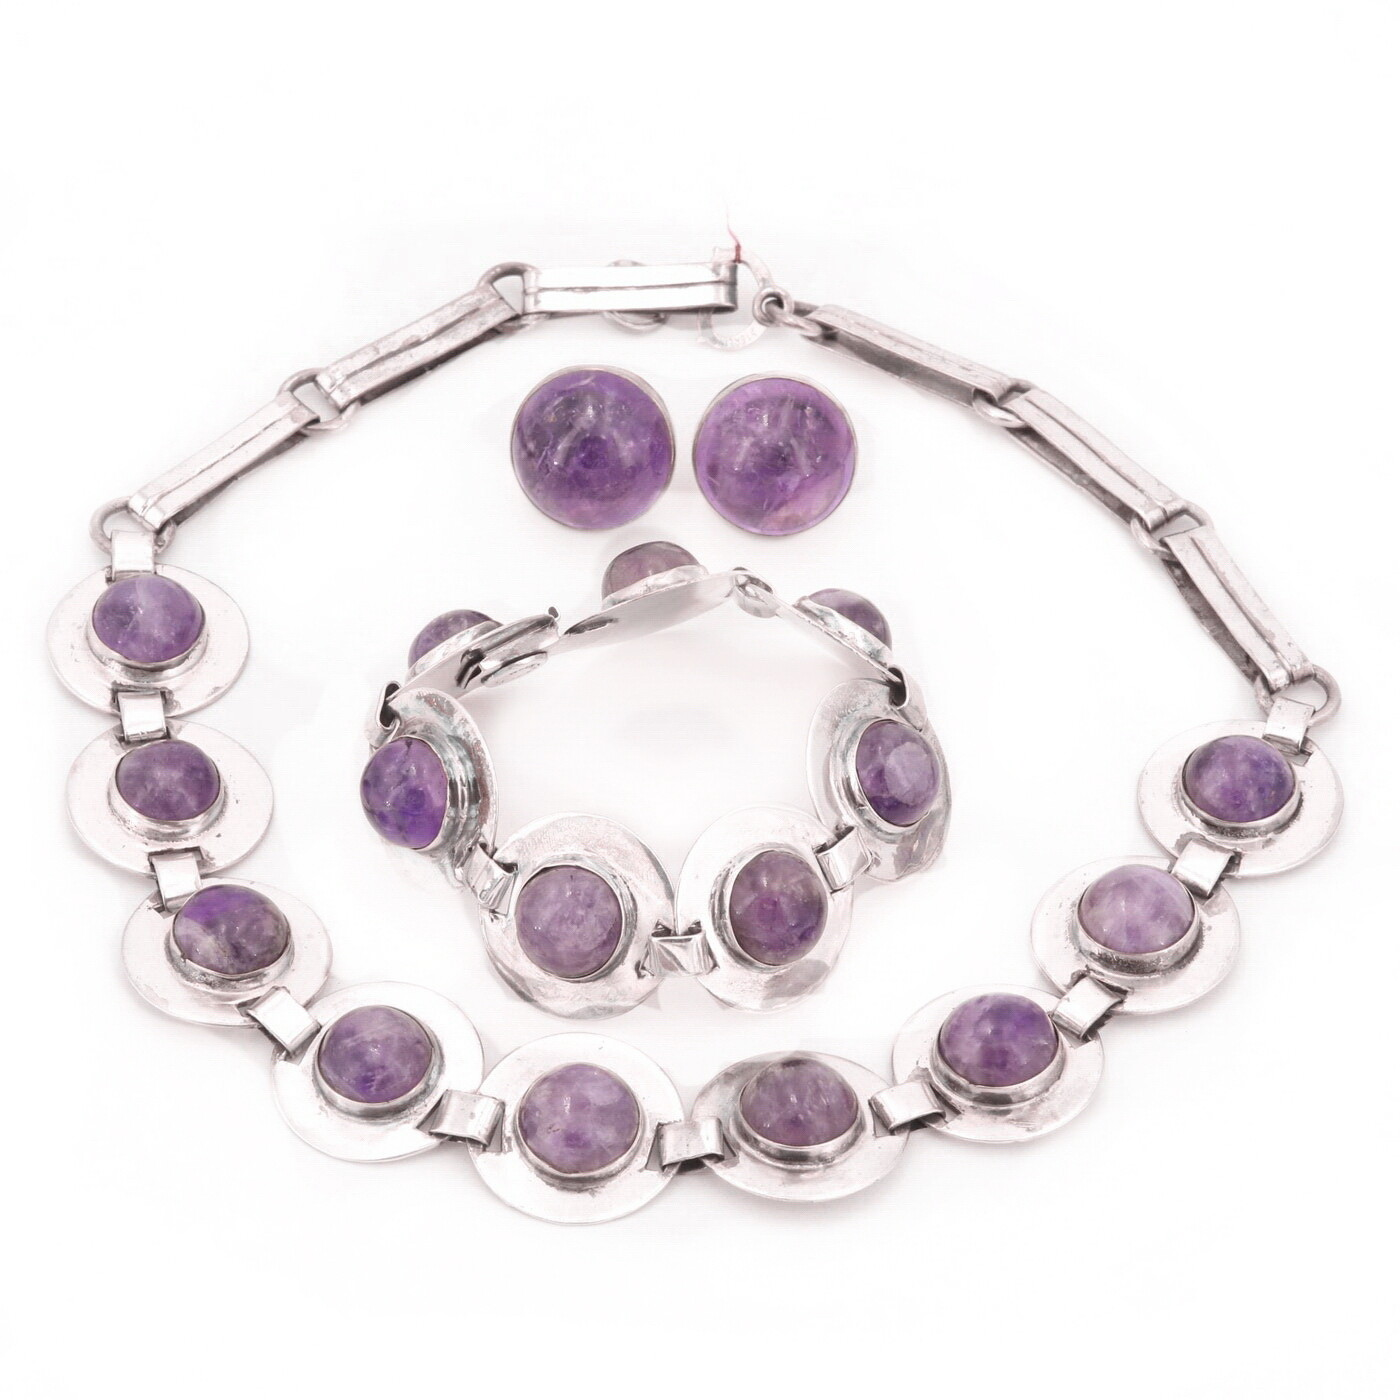 Taxco Amethyst Silver Trio Necklace Bracelet Earrings Parure